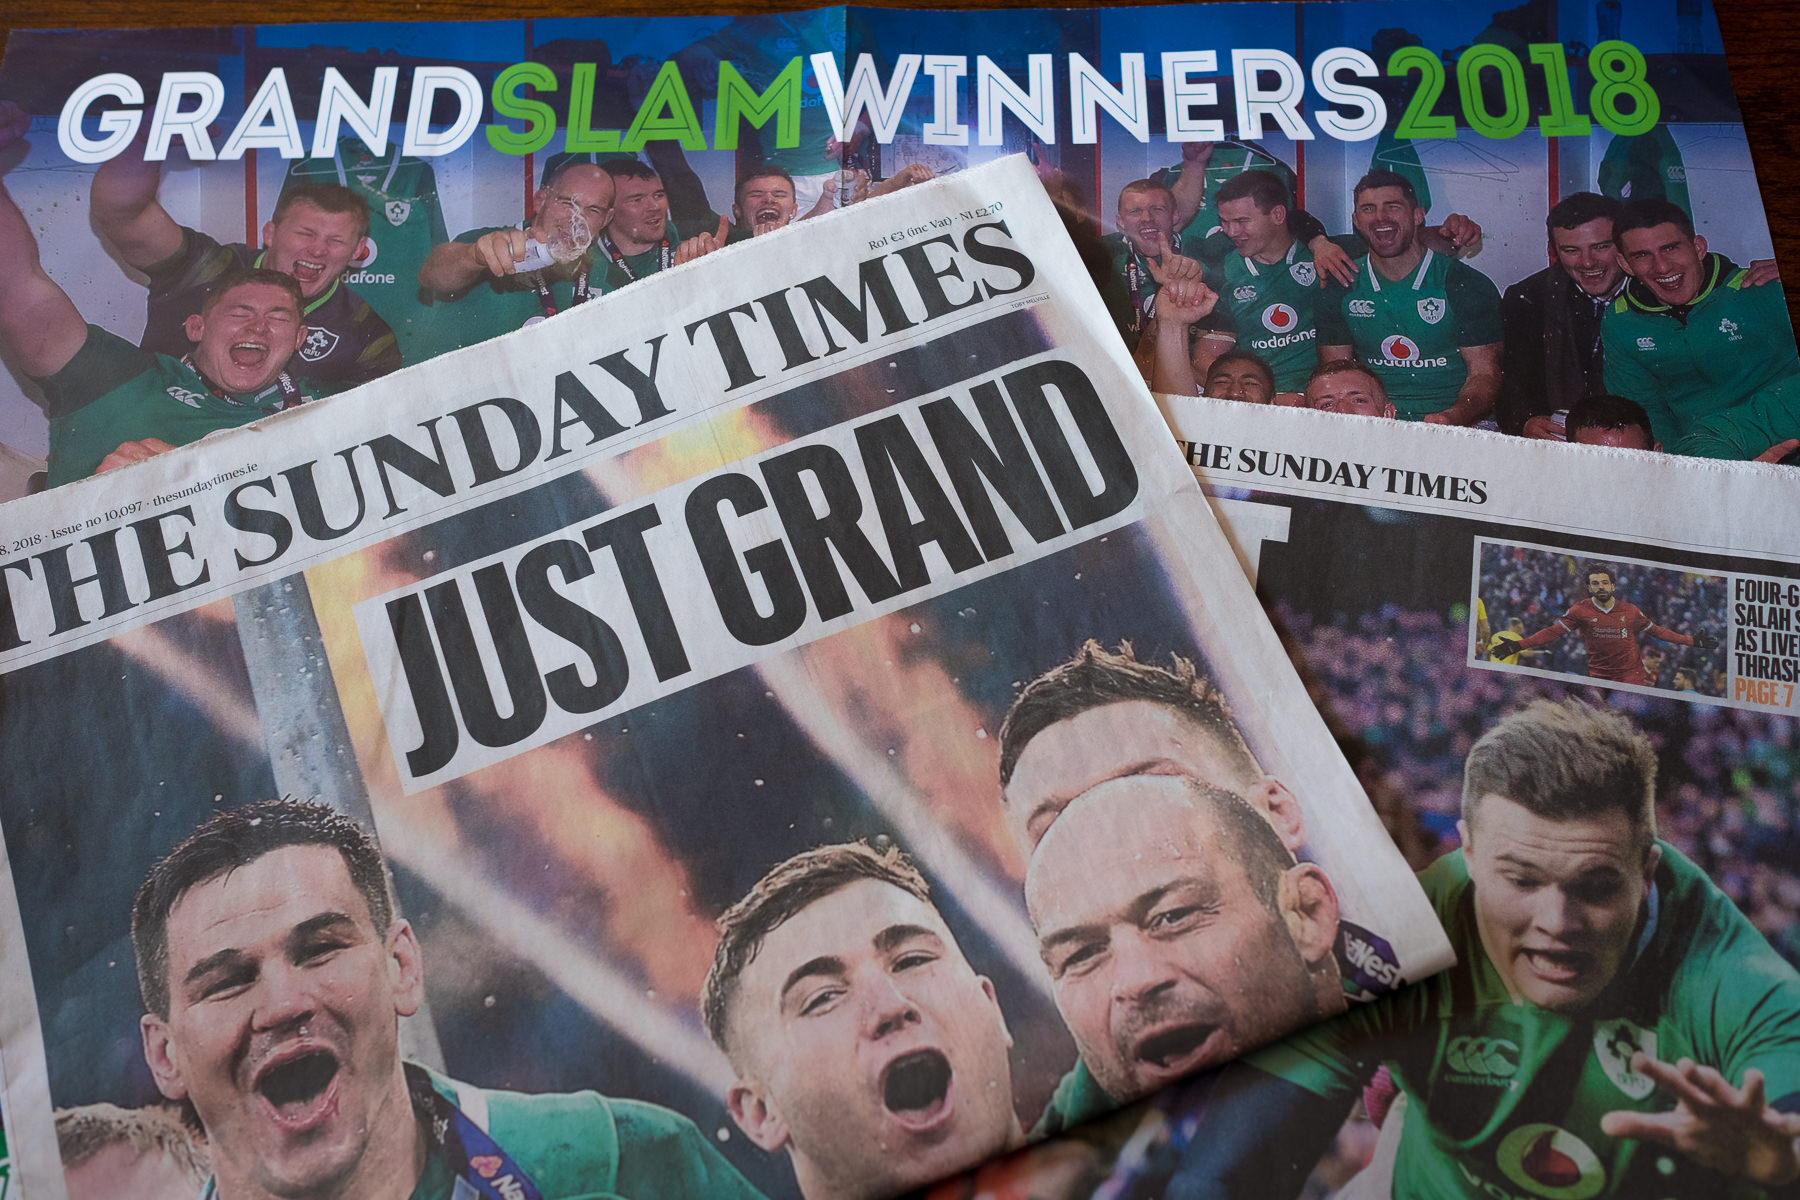 Irish newspaper front page with photograph of celebrating Irish rugby team.